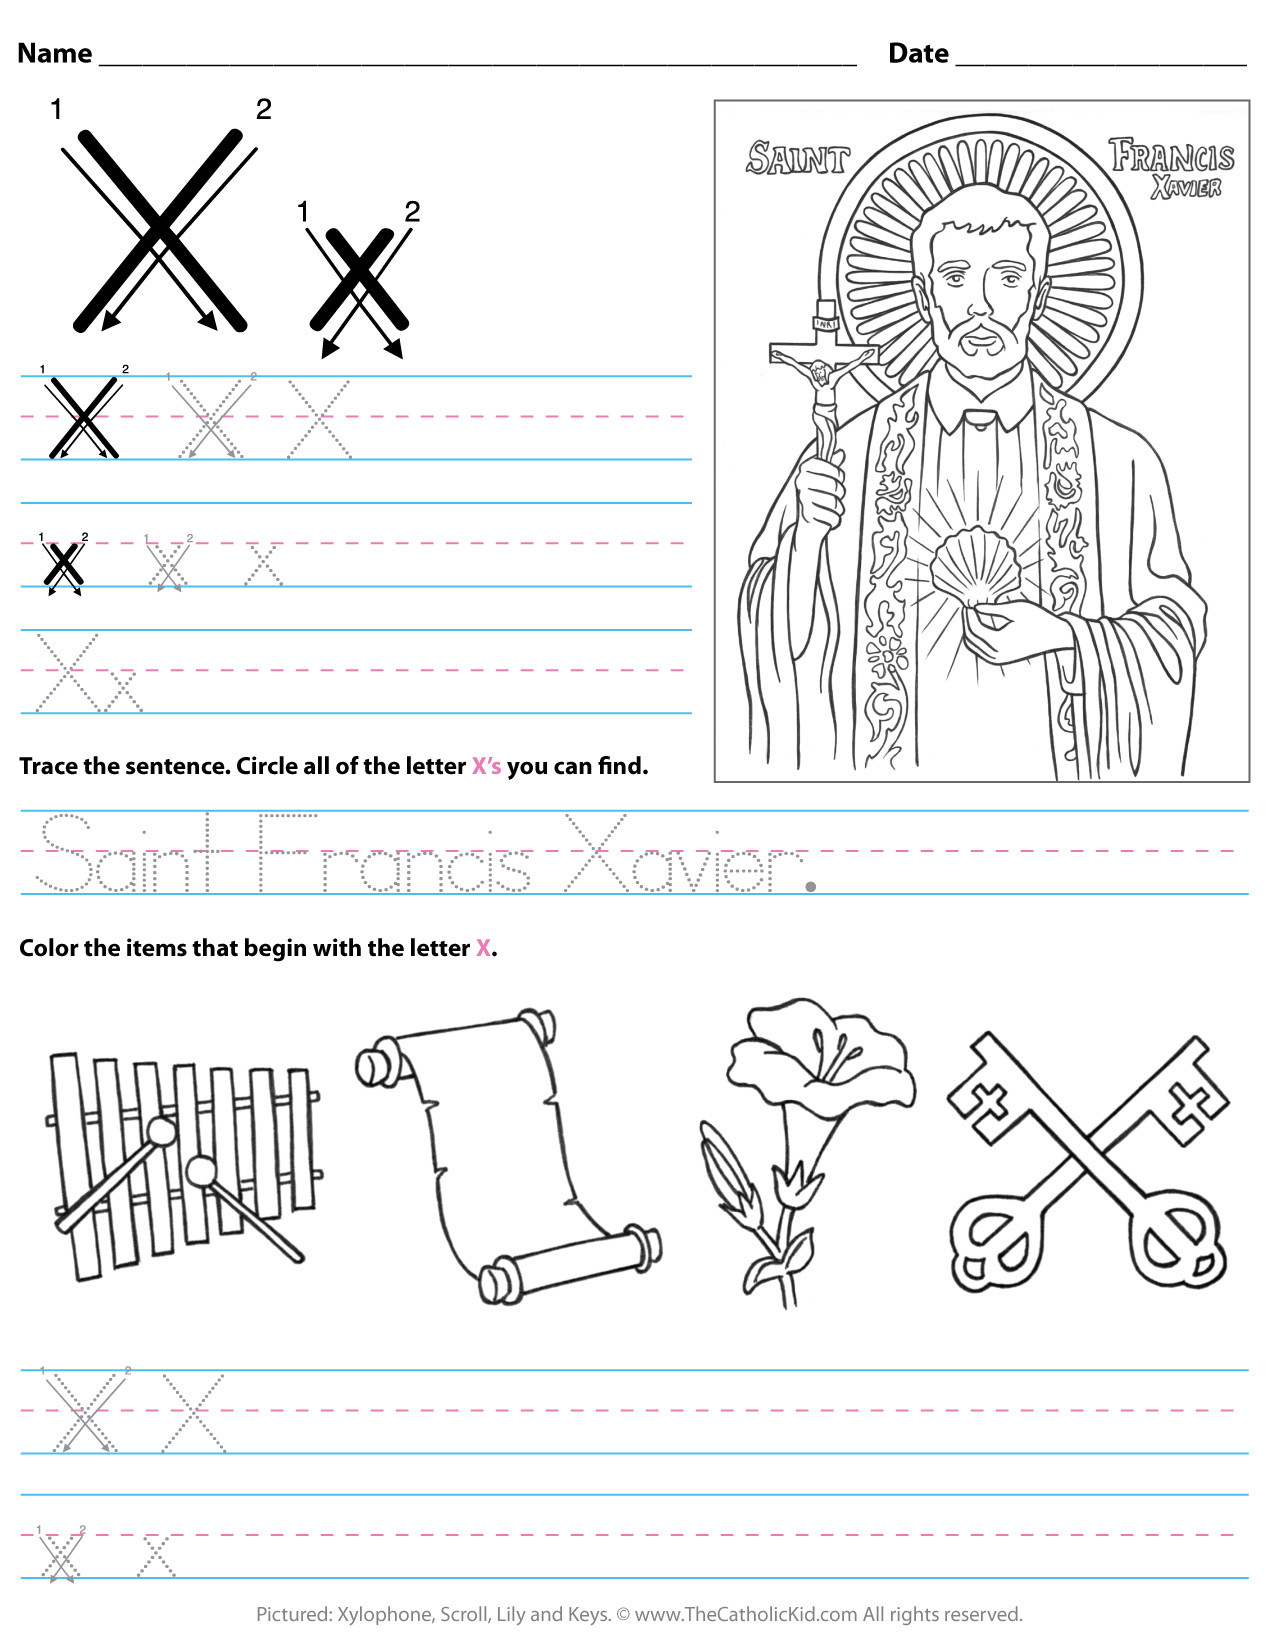 Preschool Letter X Worksheets Catholic Alphabet Letter X Worksheet Preschool Kindergarten